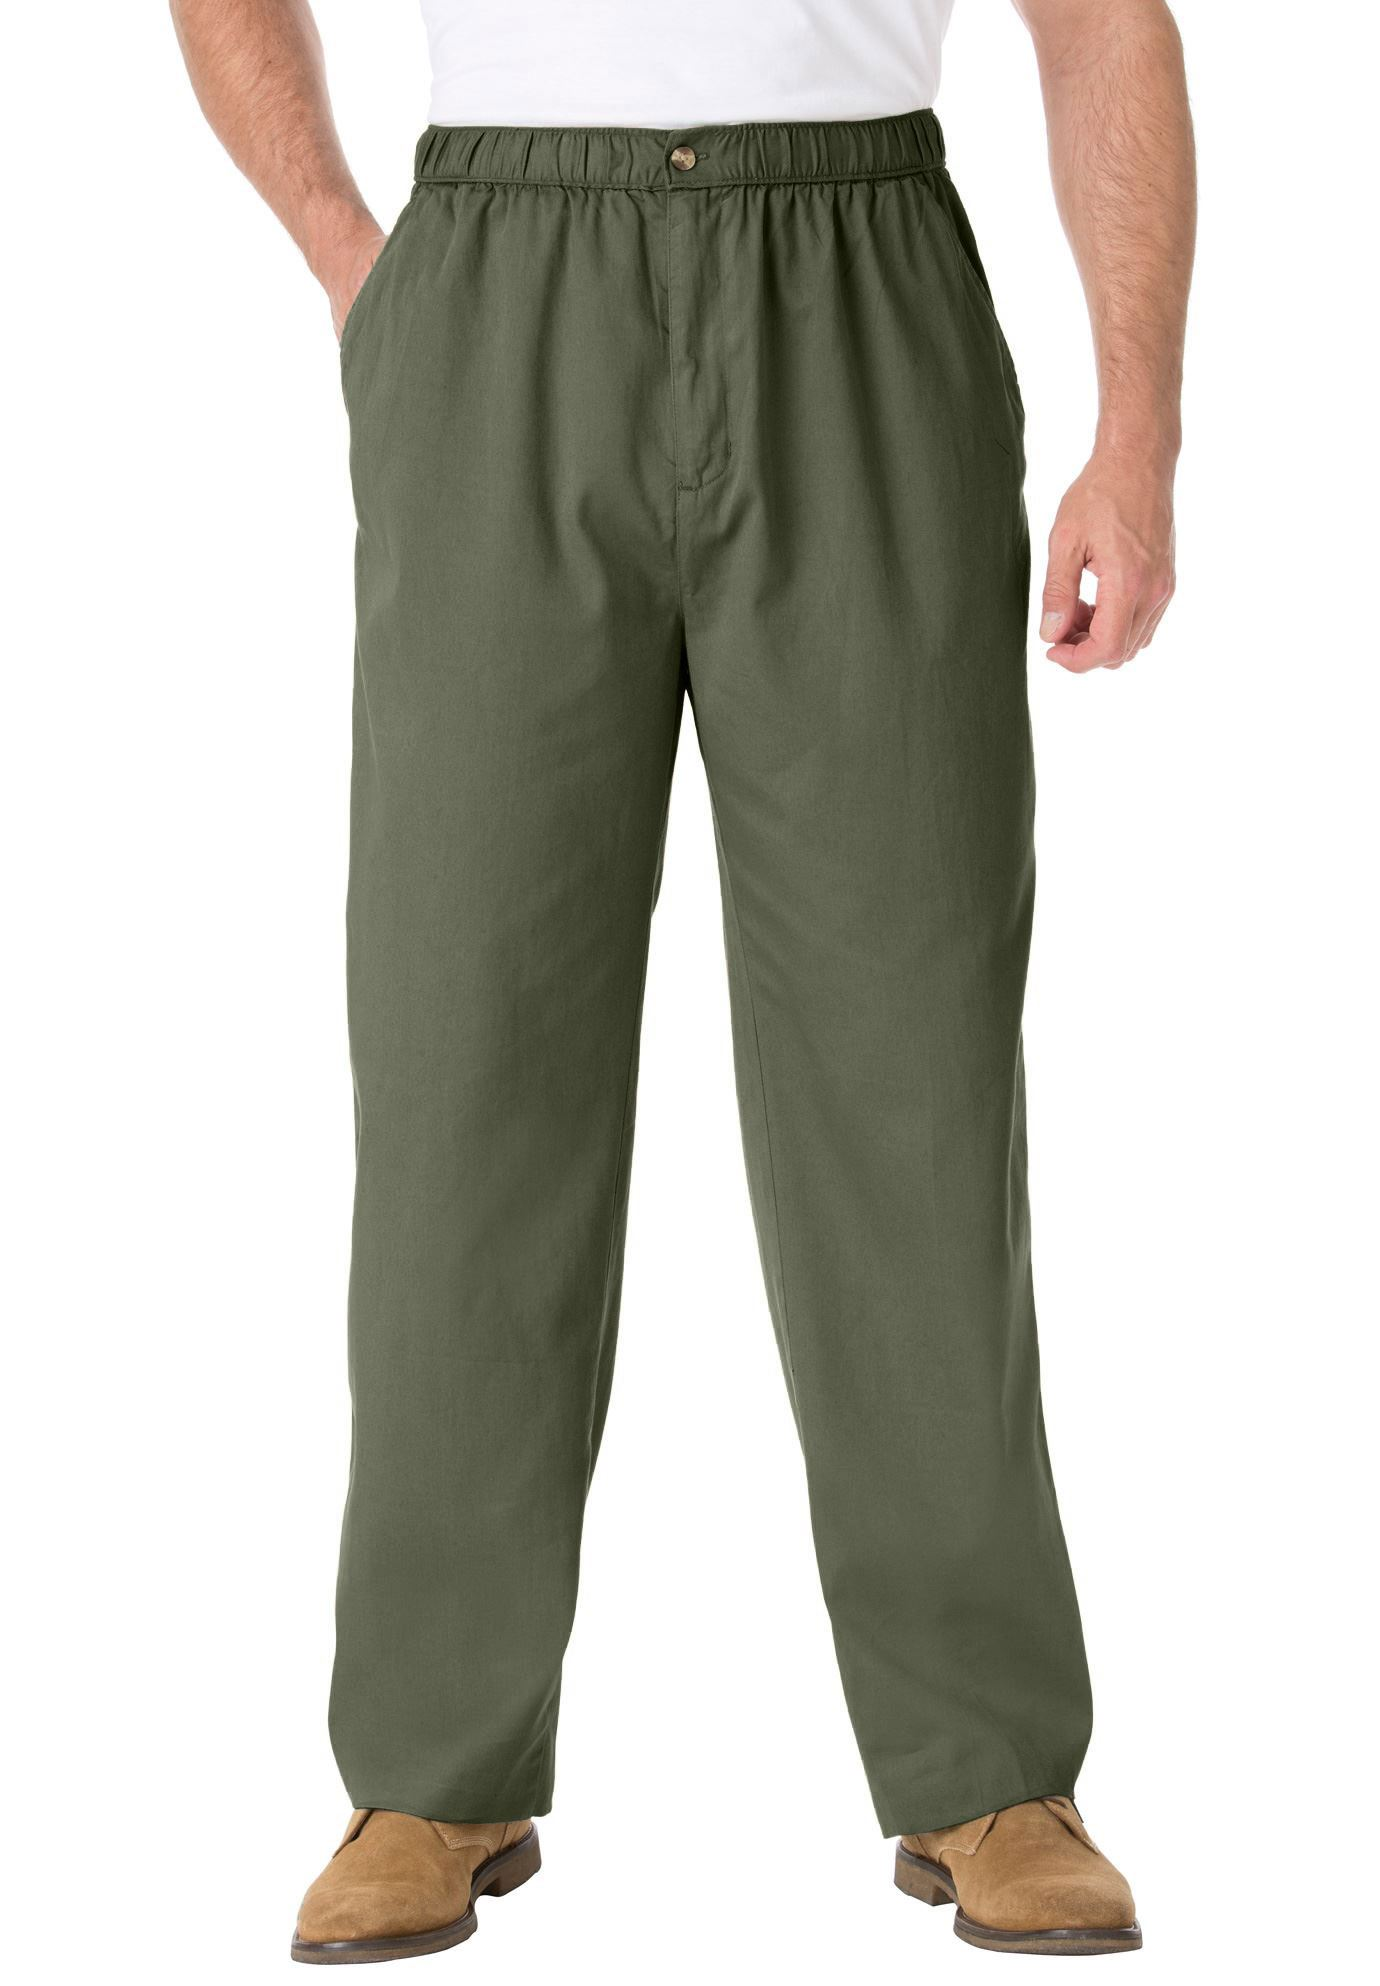 Kingsize Men's Big & Tall Knockarounds Plain Front Pants In Twill Or Denim